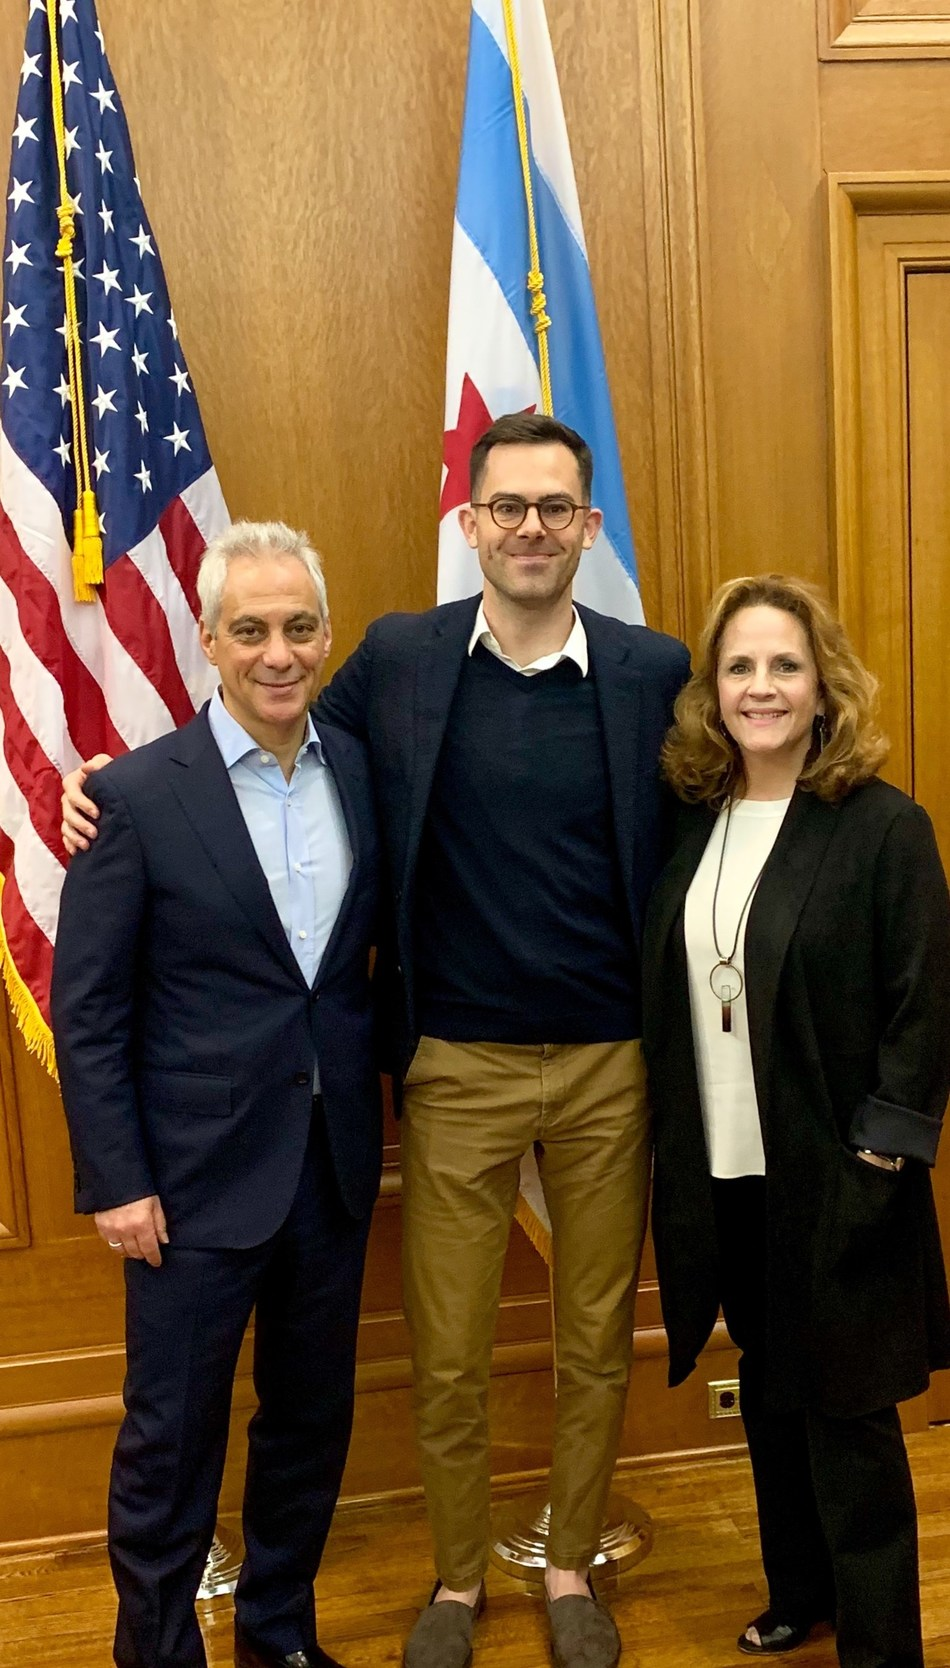 Rahm Emanuel - Former Mayor of Chicago, Joe Scanlin - Co-Founder and CEO of Scanalytics Inc, Lori Healey - CEO of MPEA